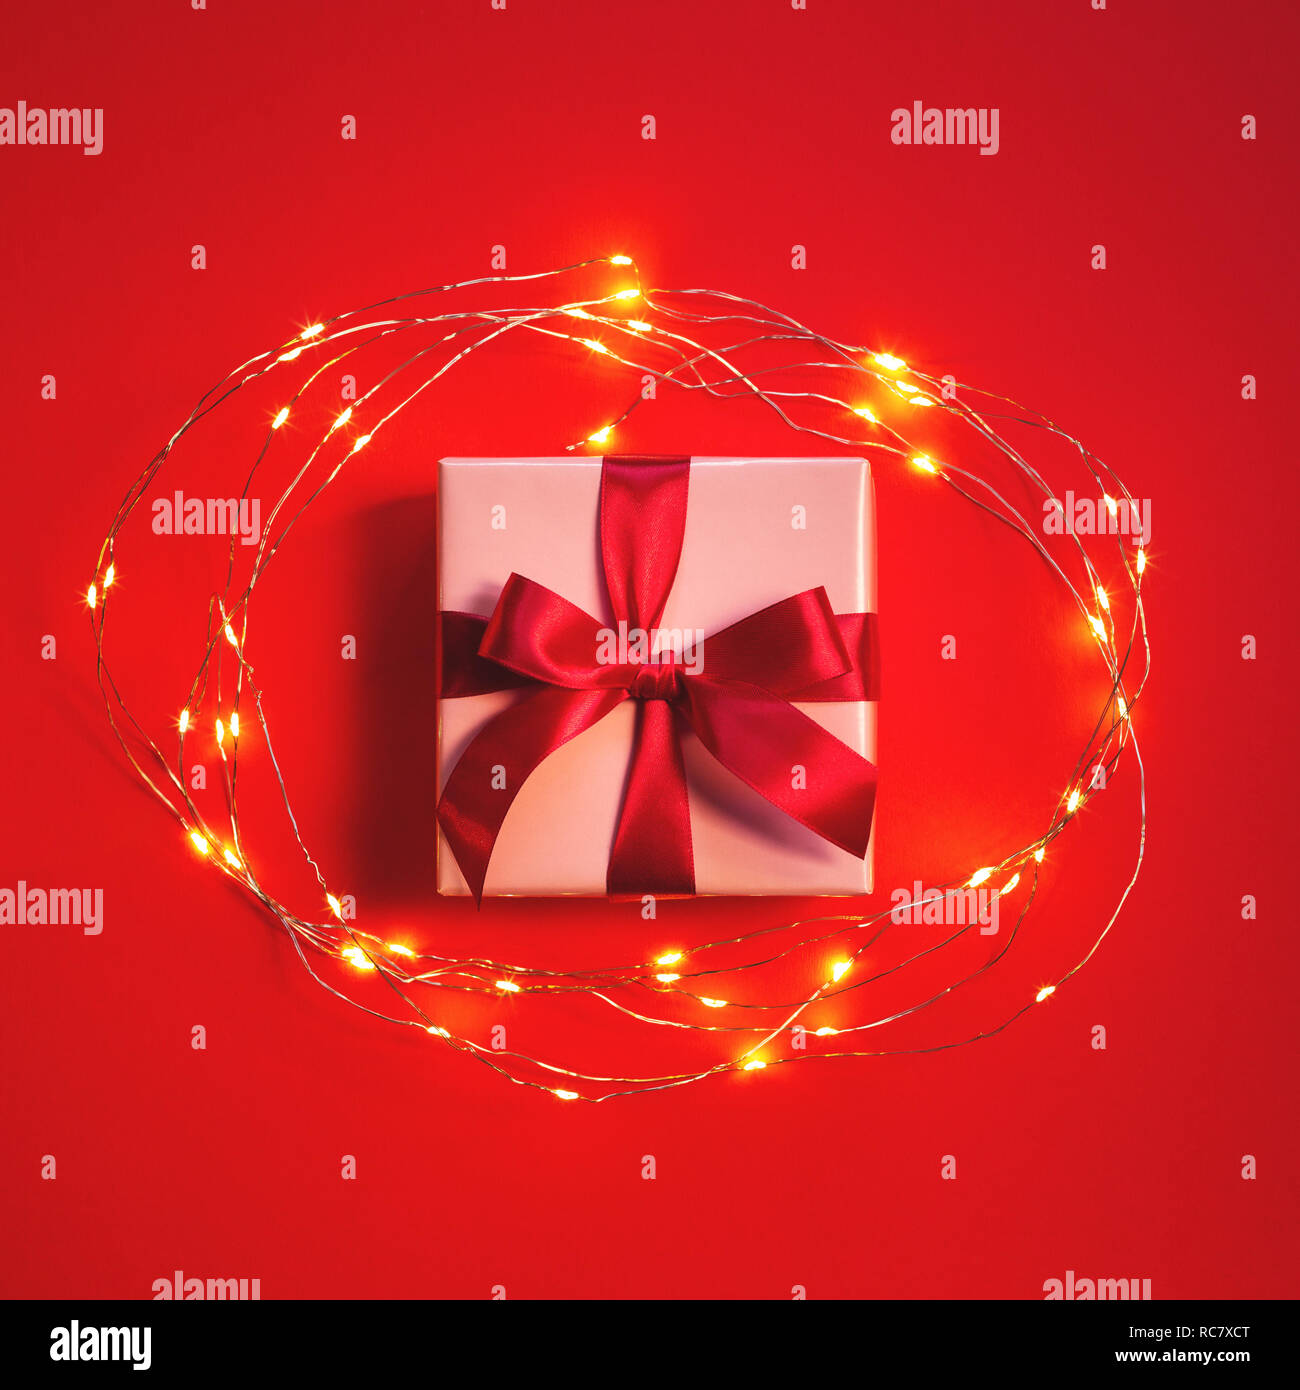 Gift box tied with red bow on red background with frame of garland lights. Top view. Stock Photo